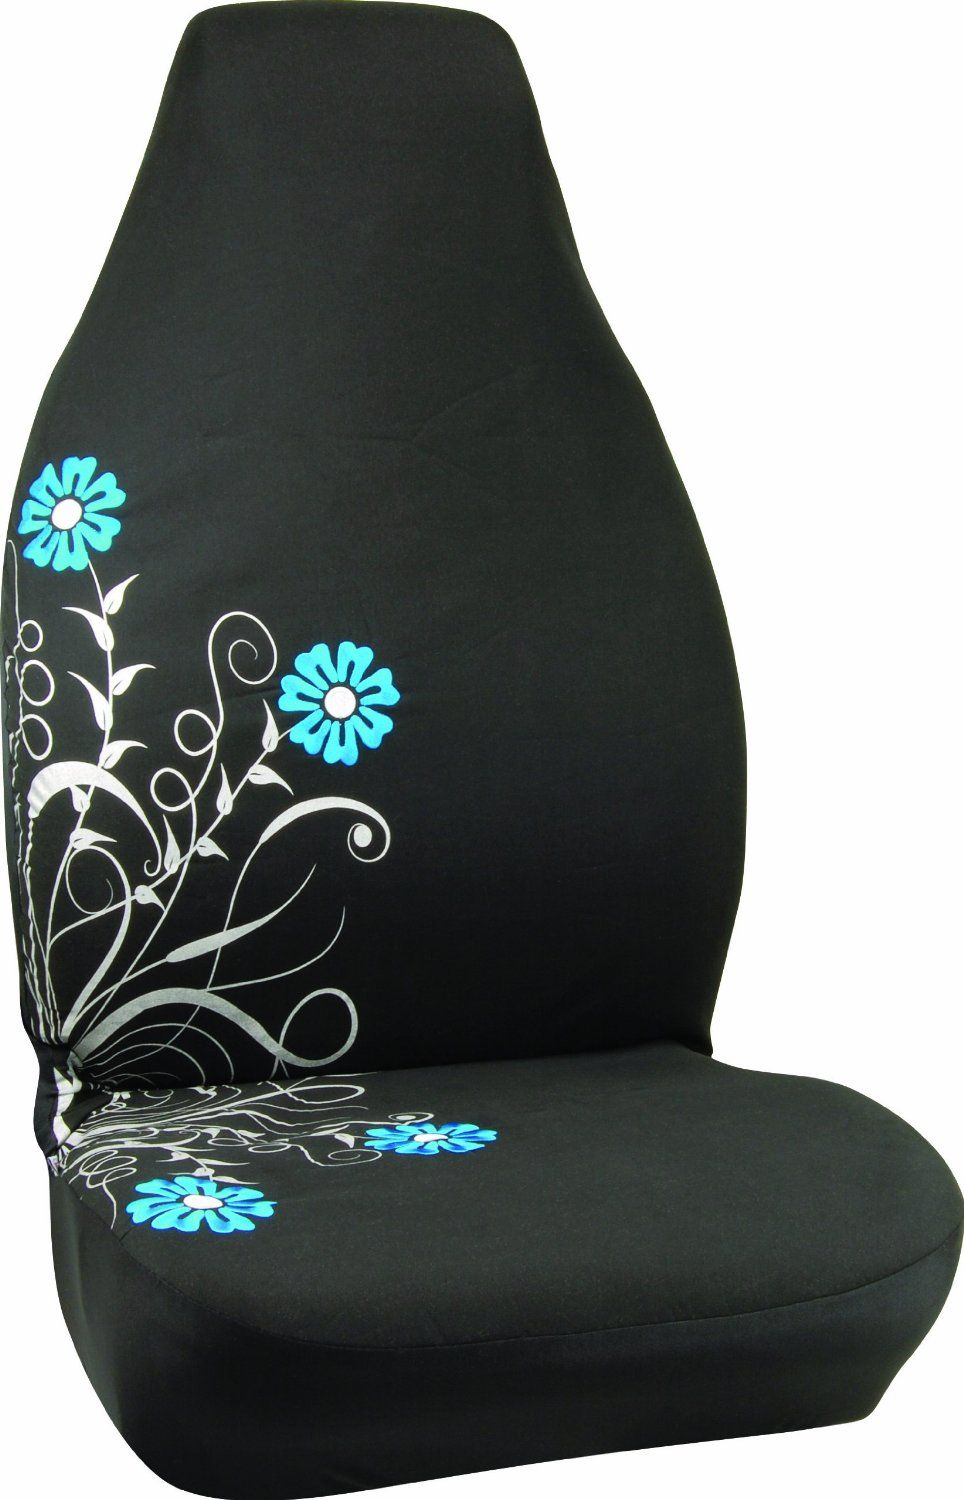 Girly car seat covers and mats for women pinterest girly car girly car seat covers and mats izmirmasajfo